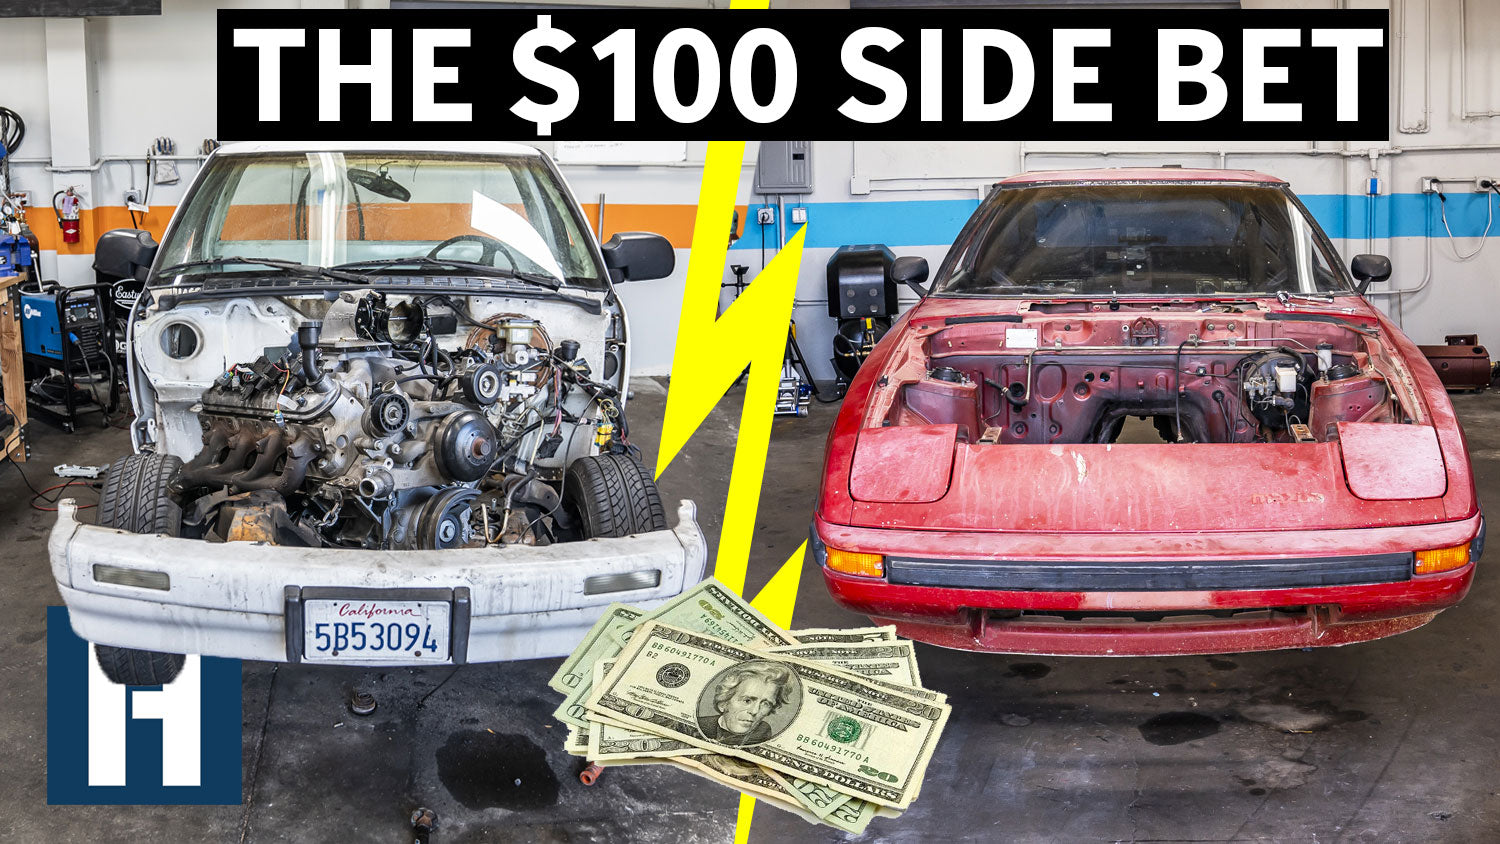 Build & Battle: Who's Engine Will Go in First?? Rotary vs V8